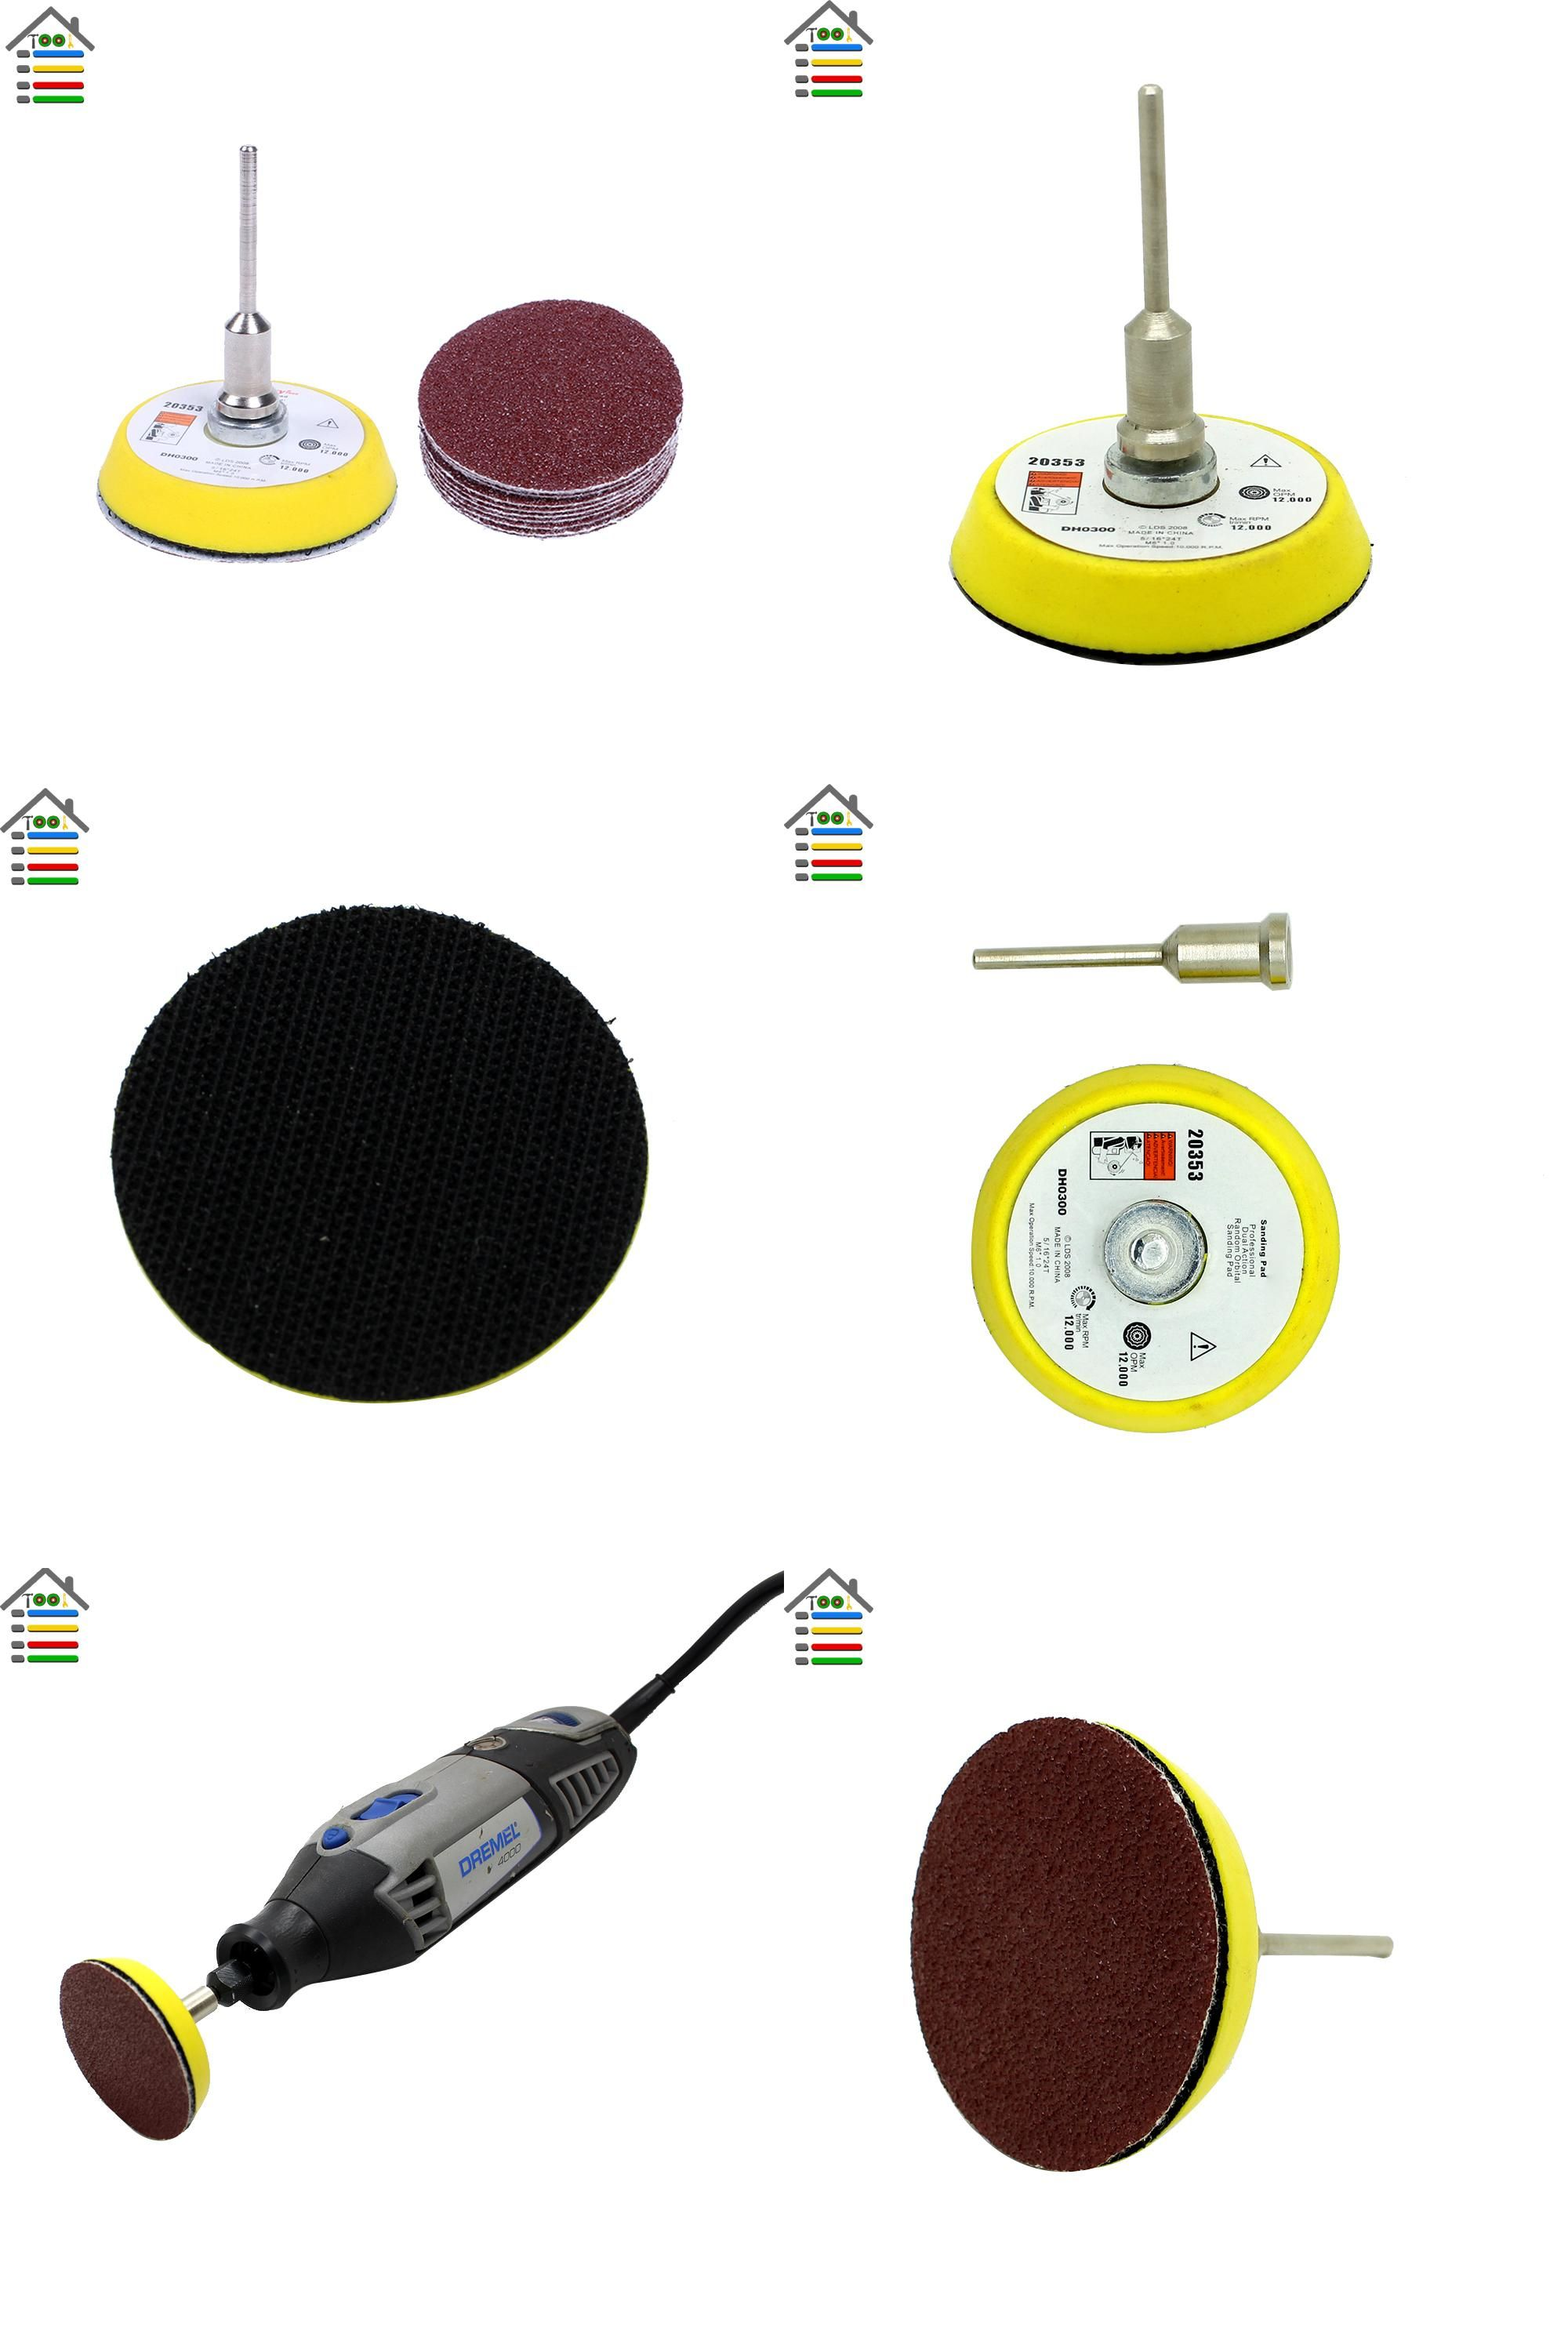 Sander Parts And Accessories 20796 5 50 Pack 1000 Grit Waterproof Hook And Loop Film Sanding Discs Wet Sand Auto Buy It Now On With Images Sanding Sand Paint Remover